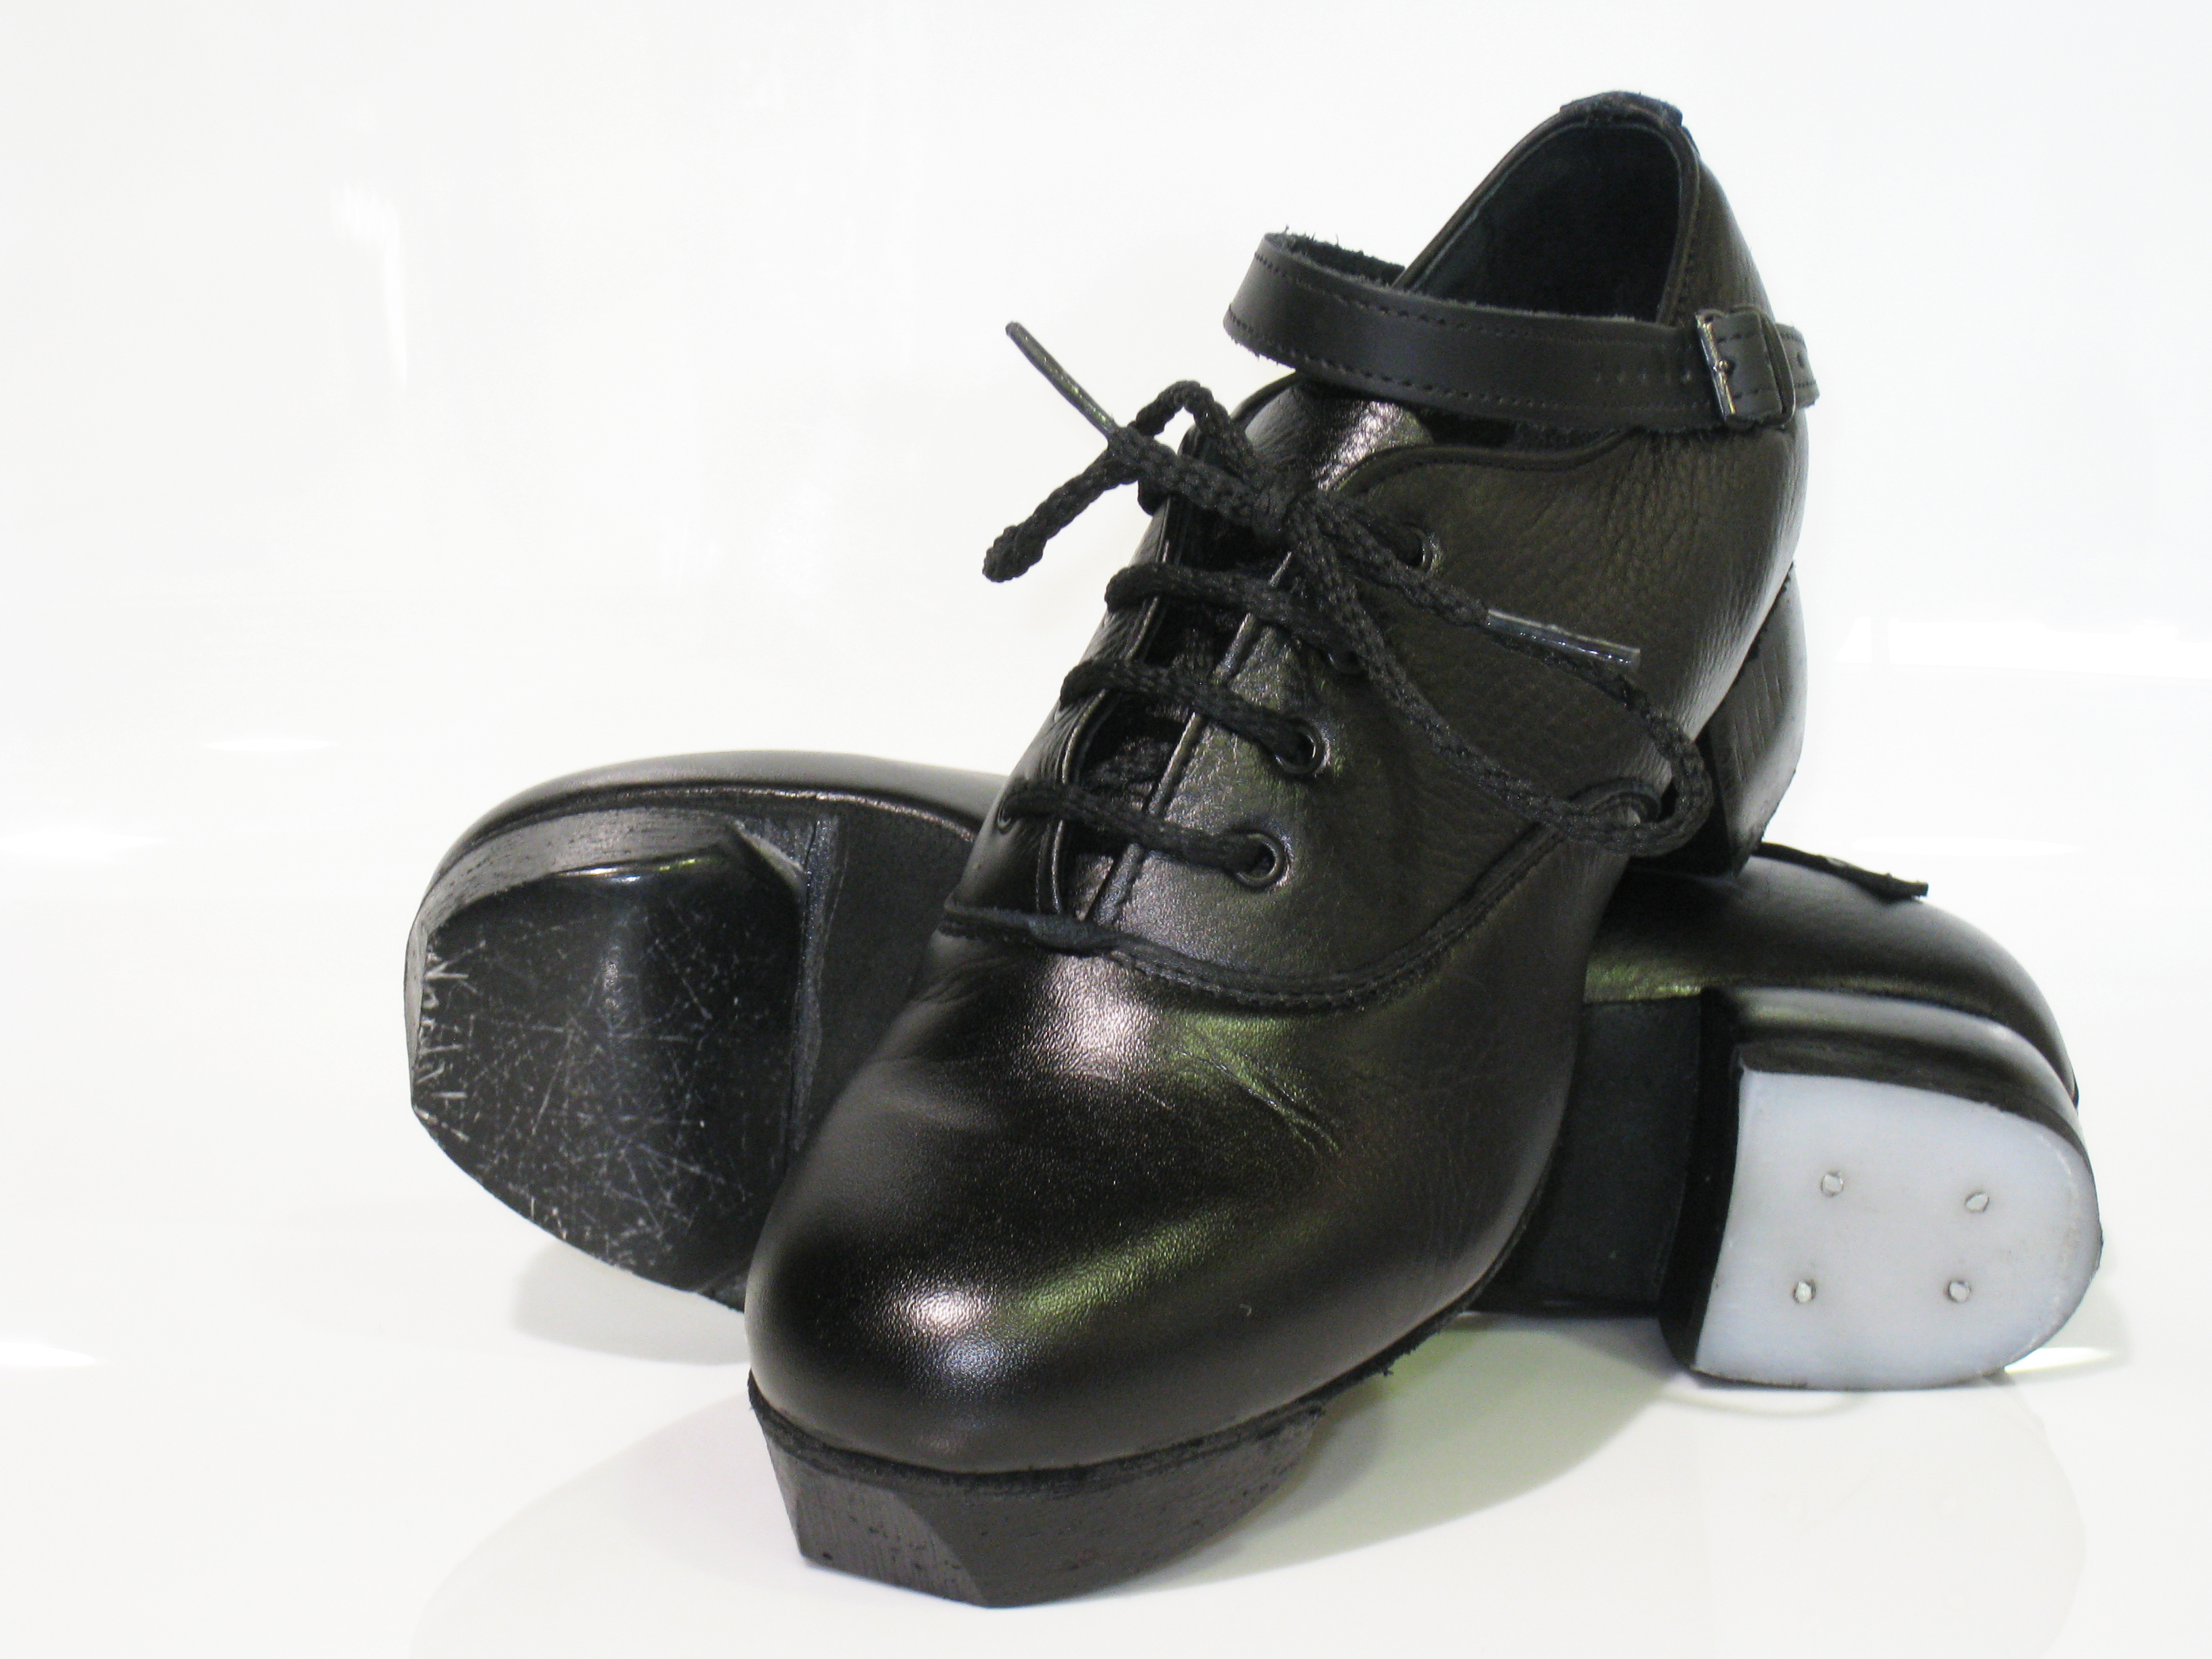 c59f2c5df New Products : Inishfree Irish Dance Shoes , Handmaking Irish ...